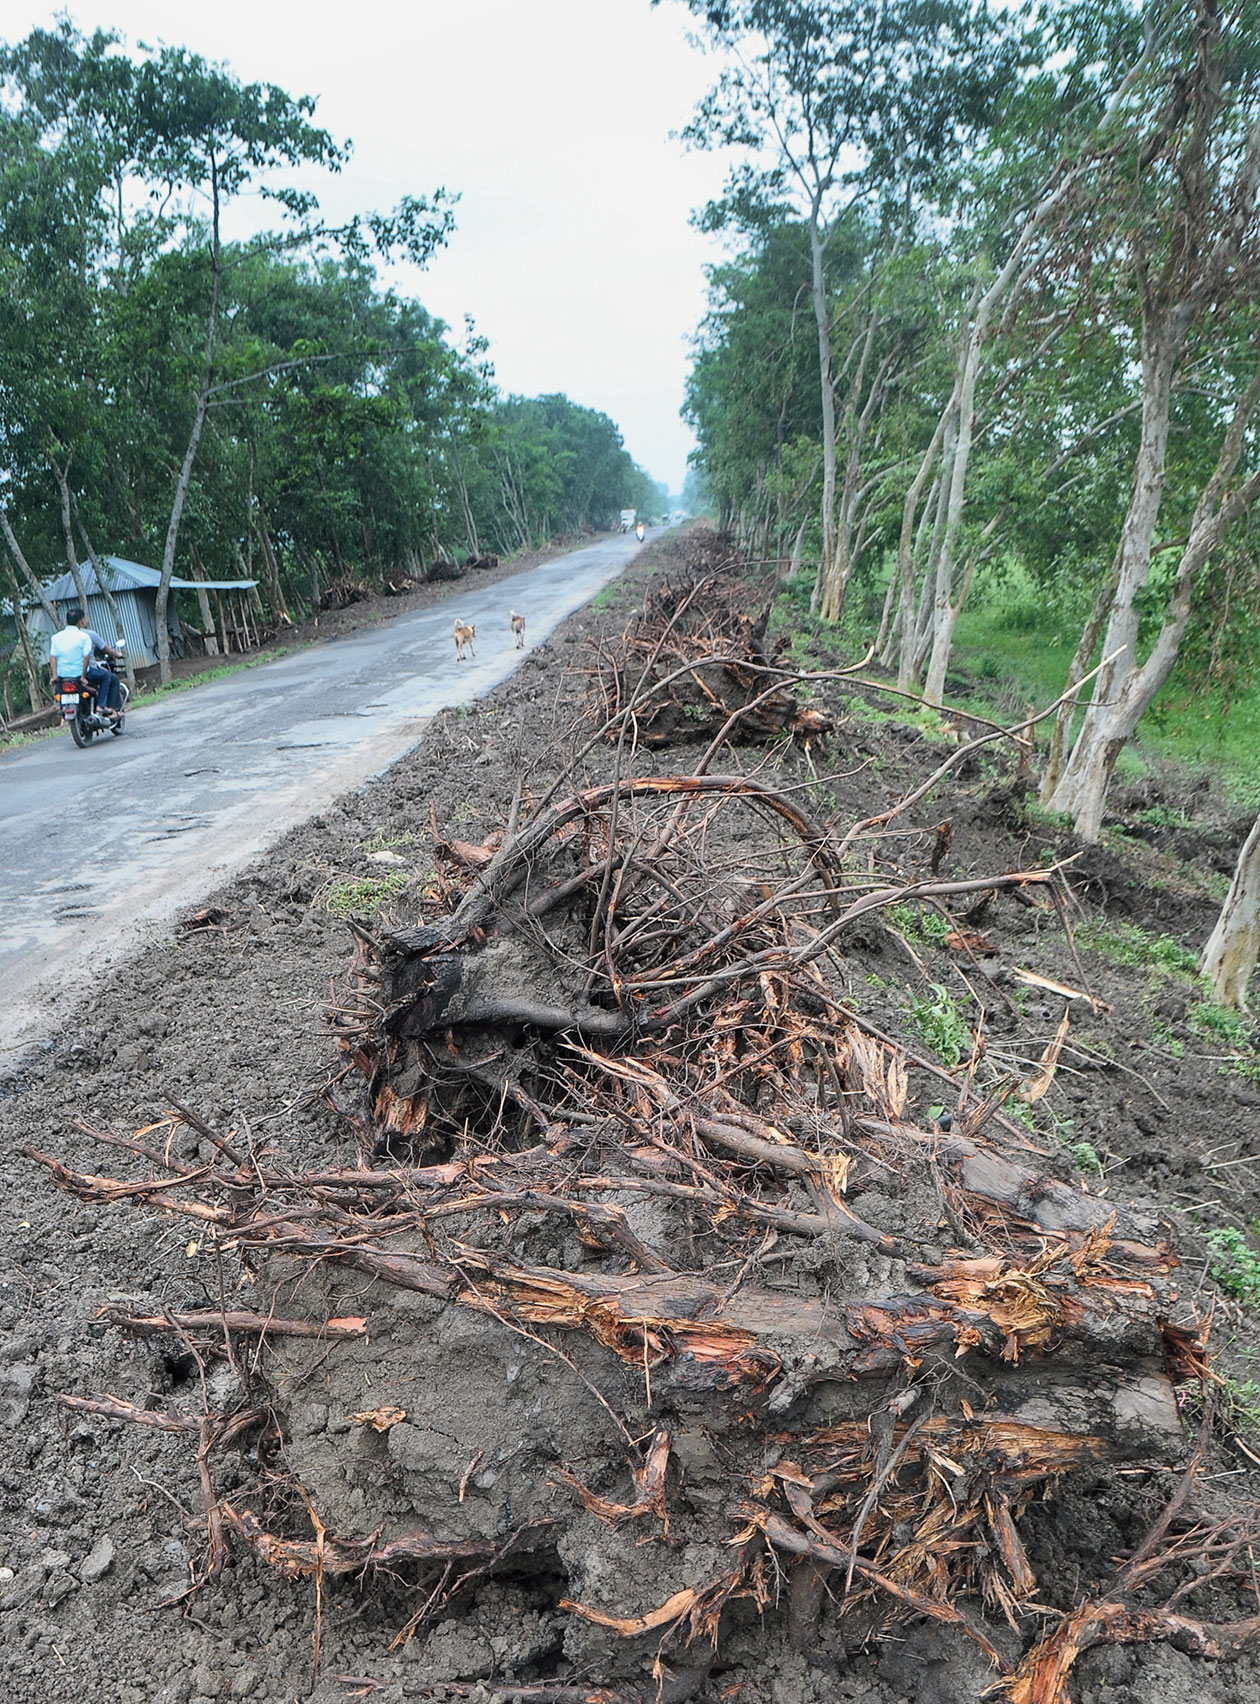 Some of the trees felled along the highway.